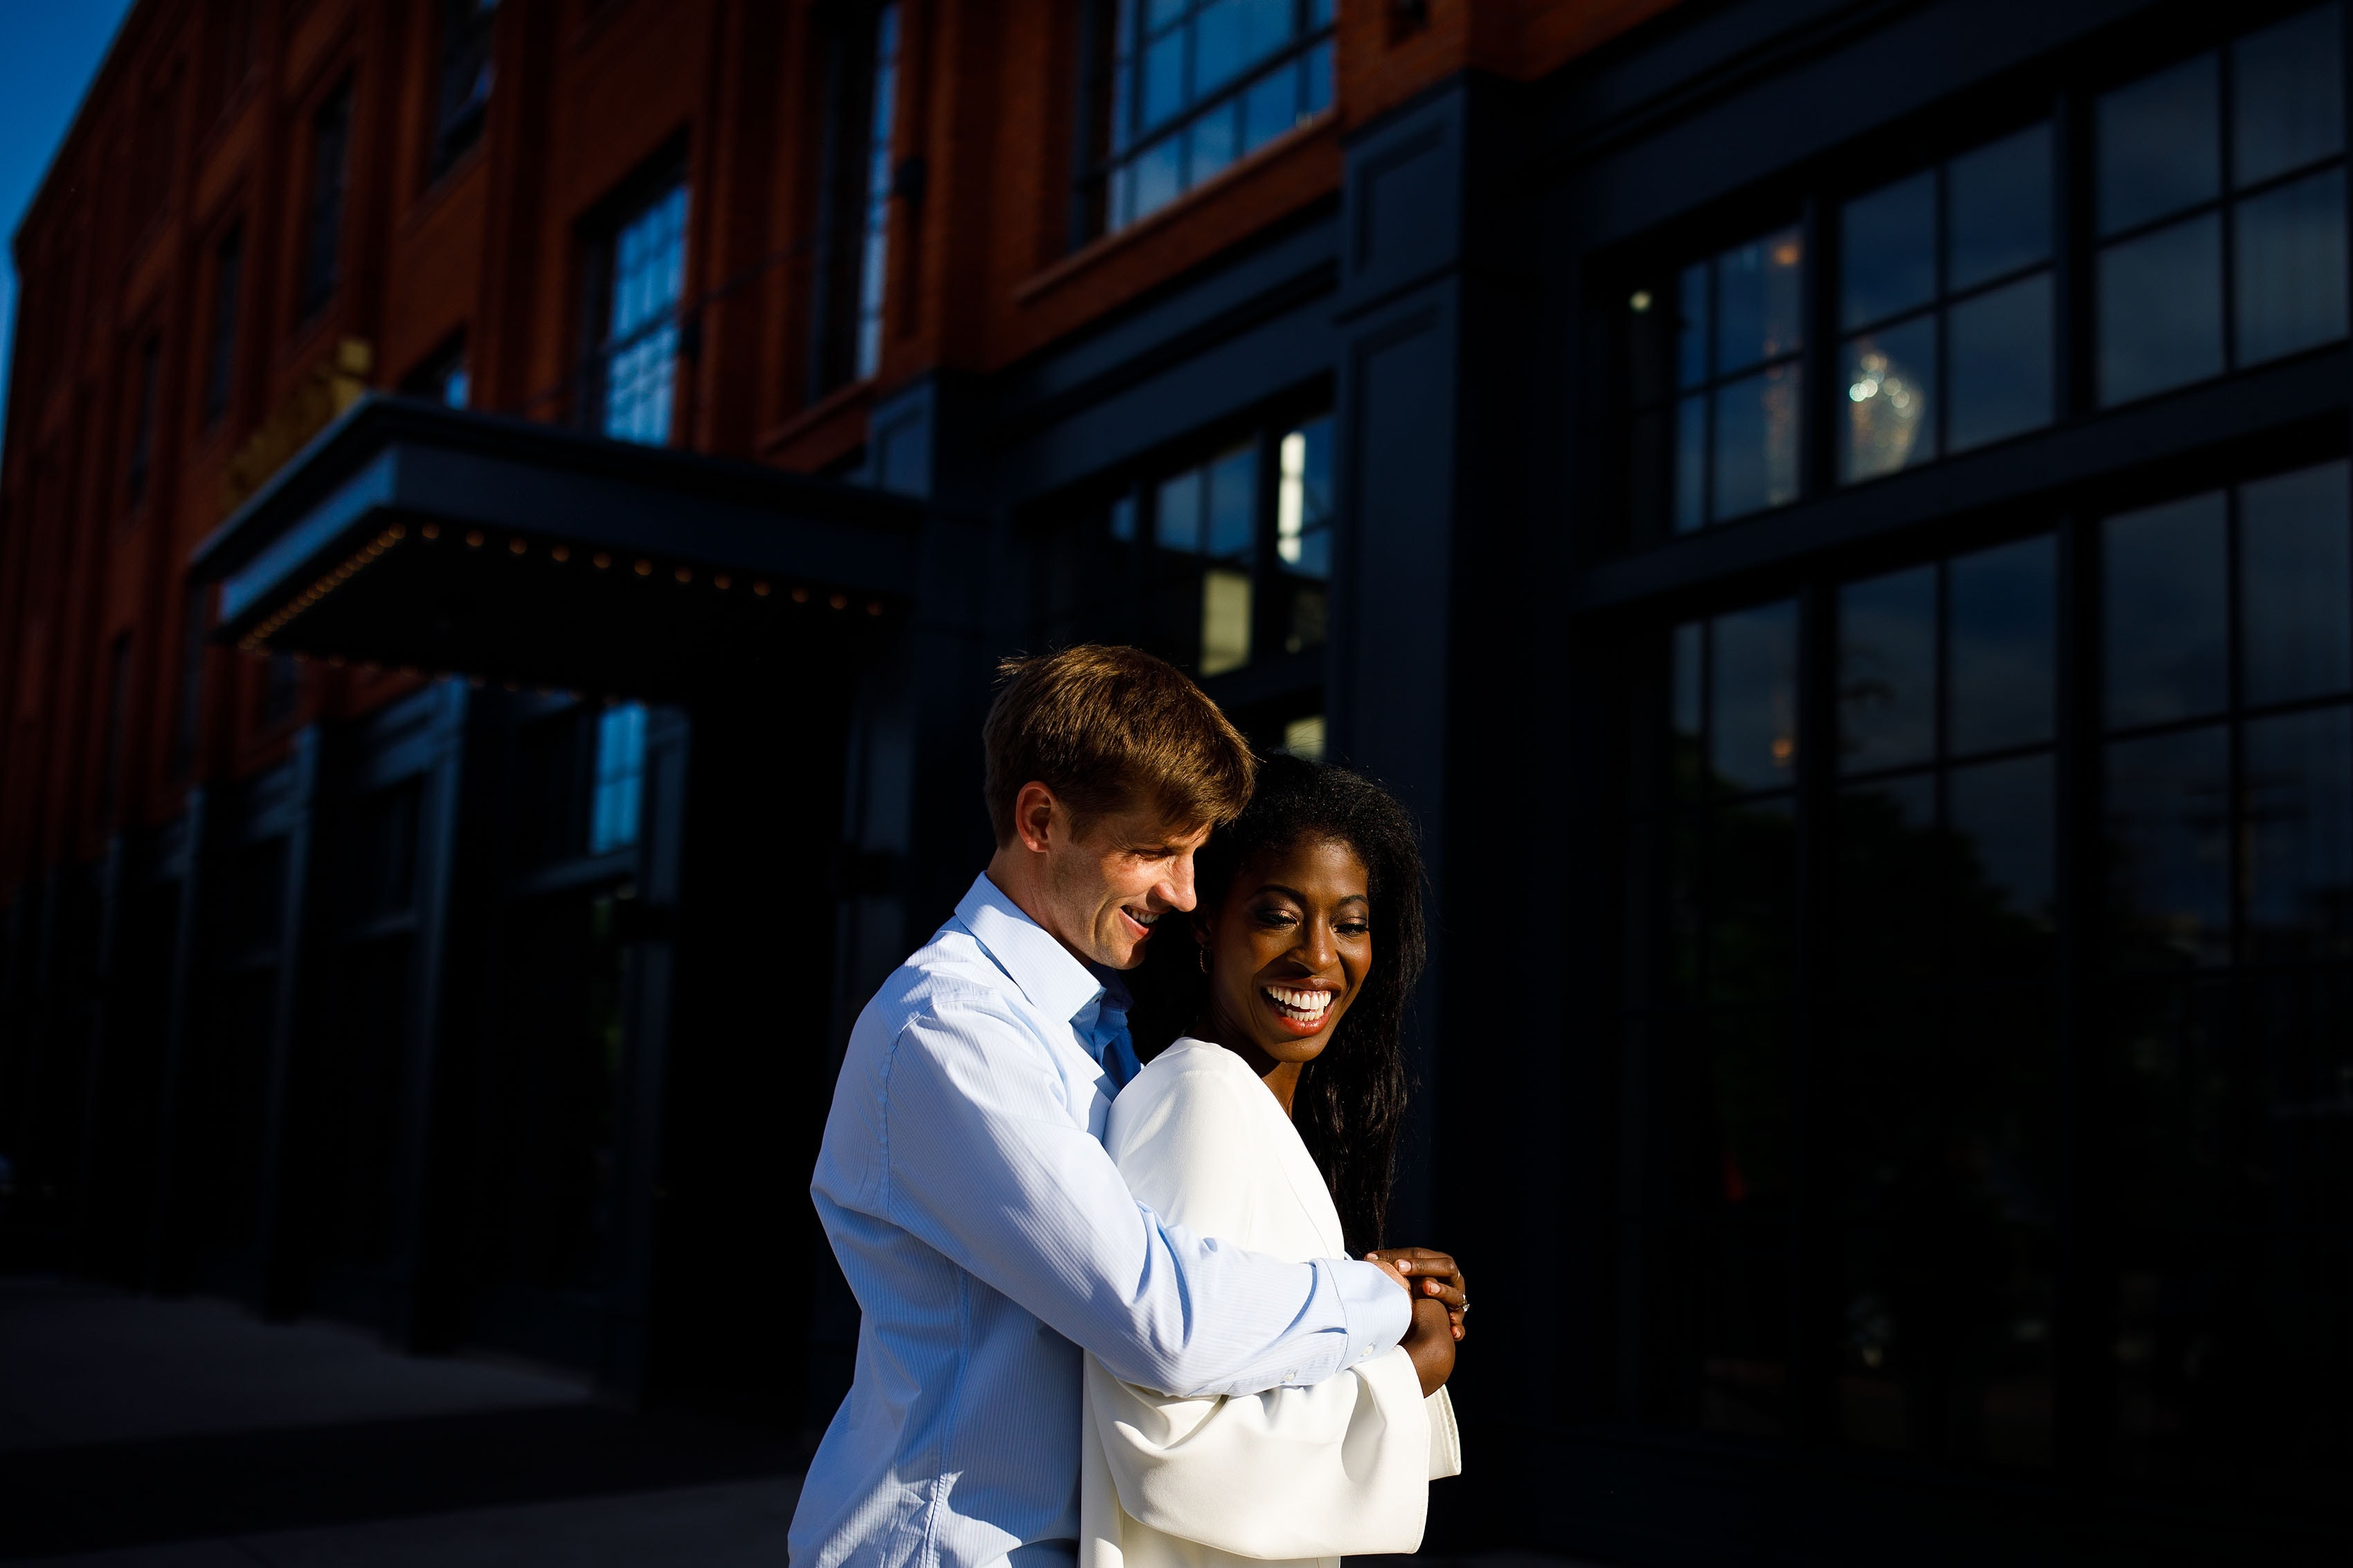 Ewo and Henry embrace outside The Ramble Hotel during their downtown engagement photos